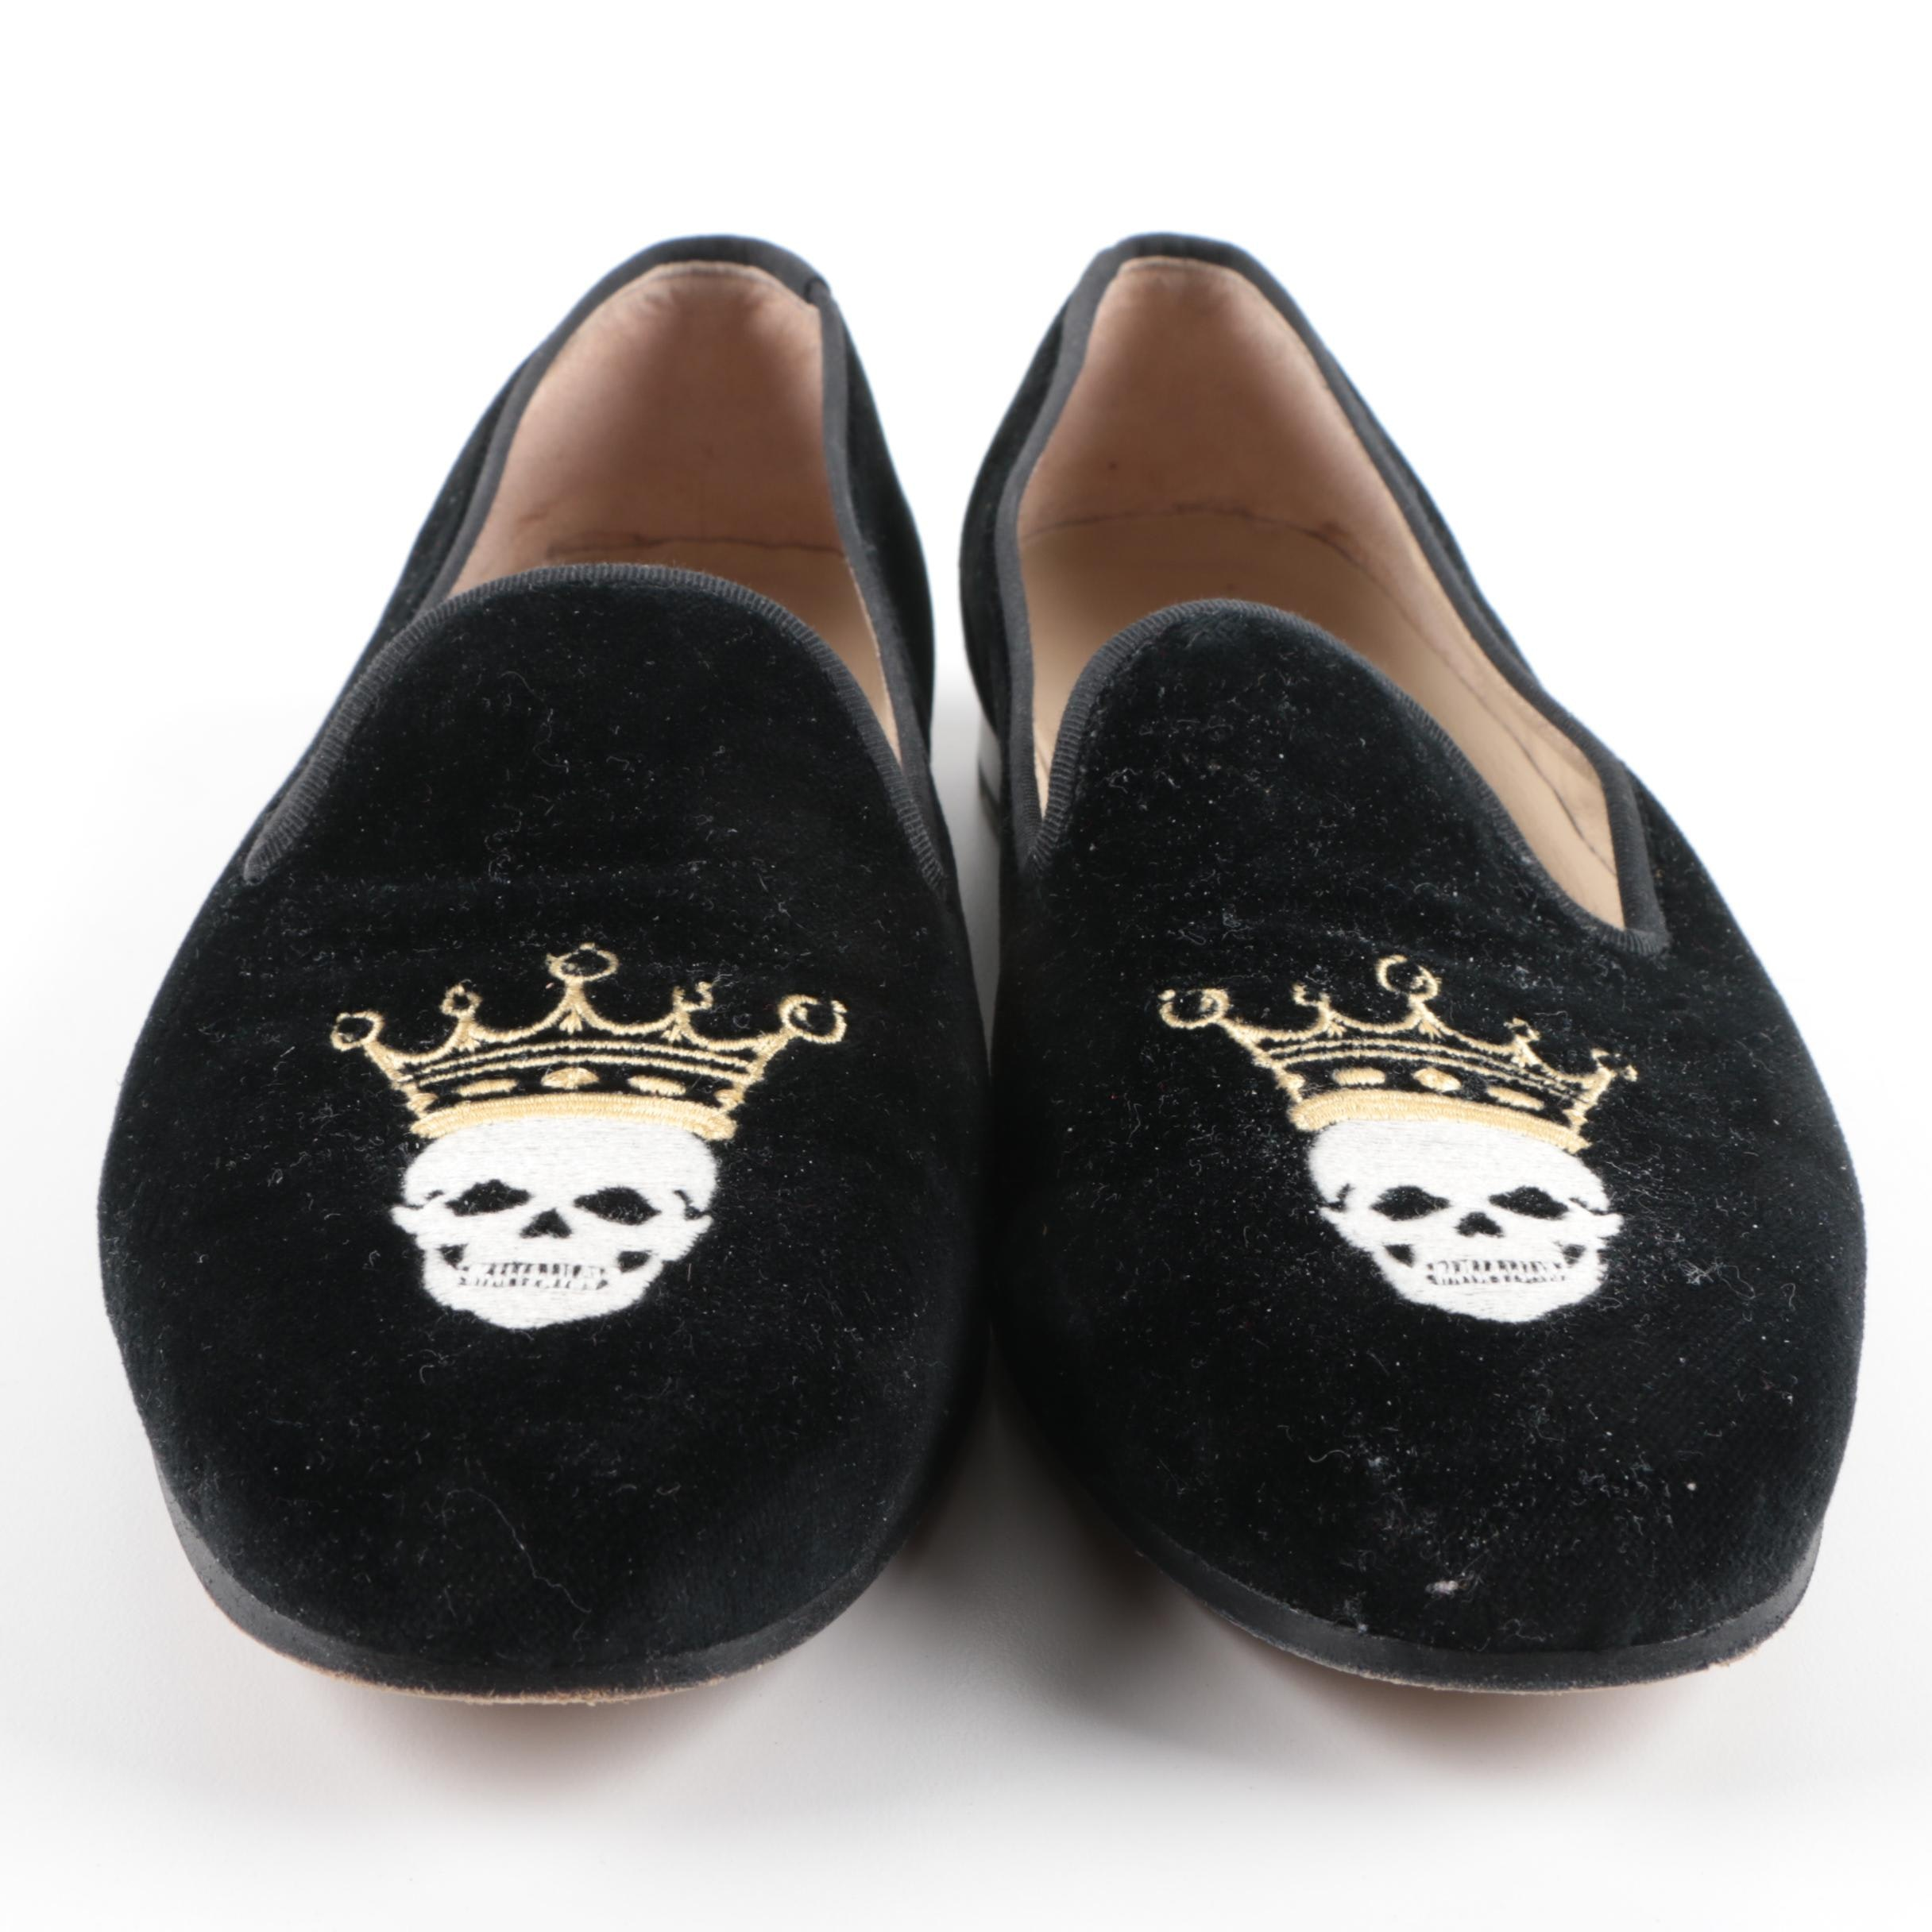 Stubbs & Wootton Embroidered Smoking Slippers